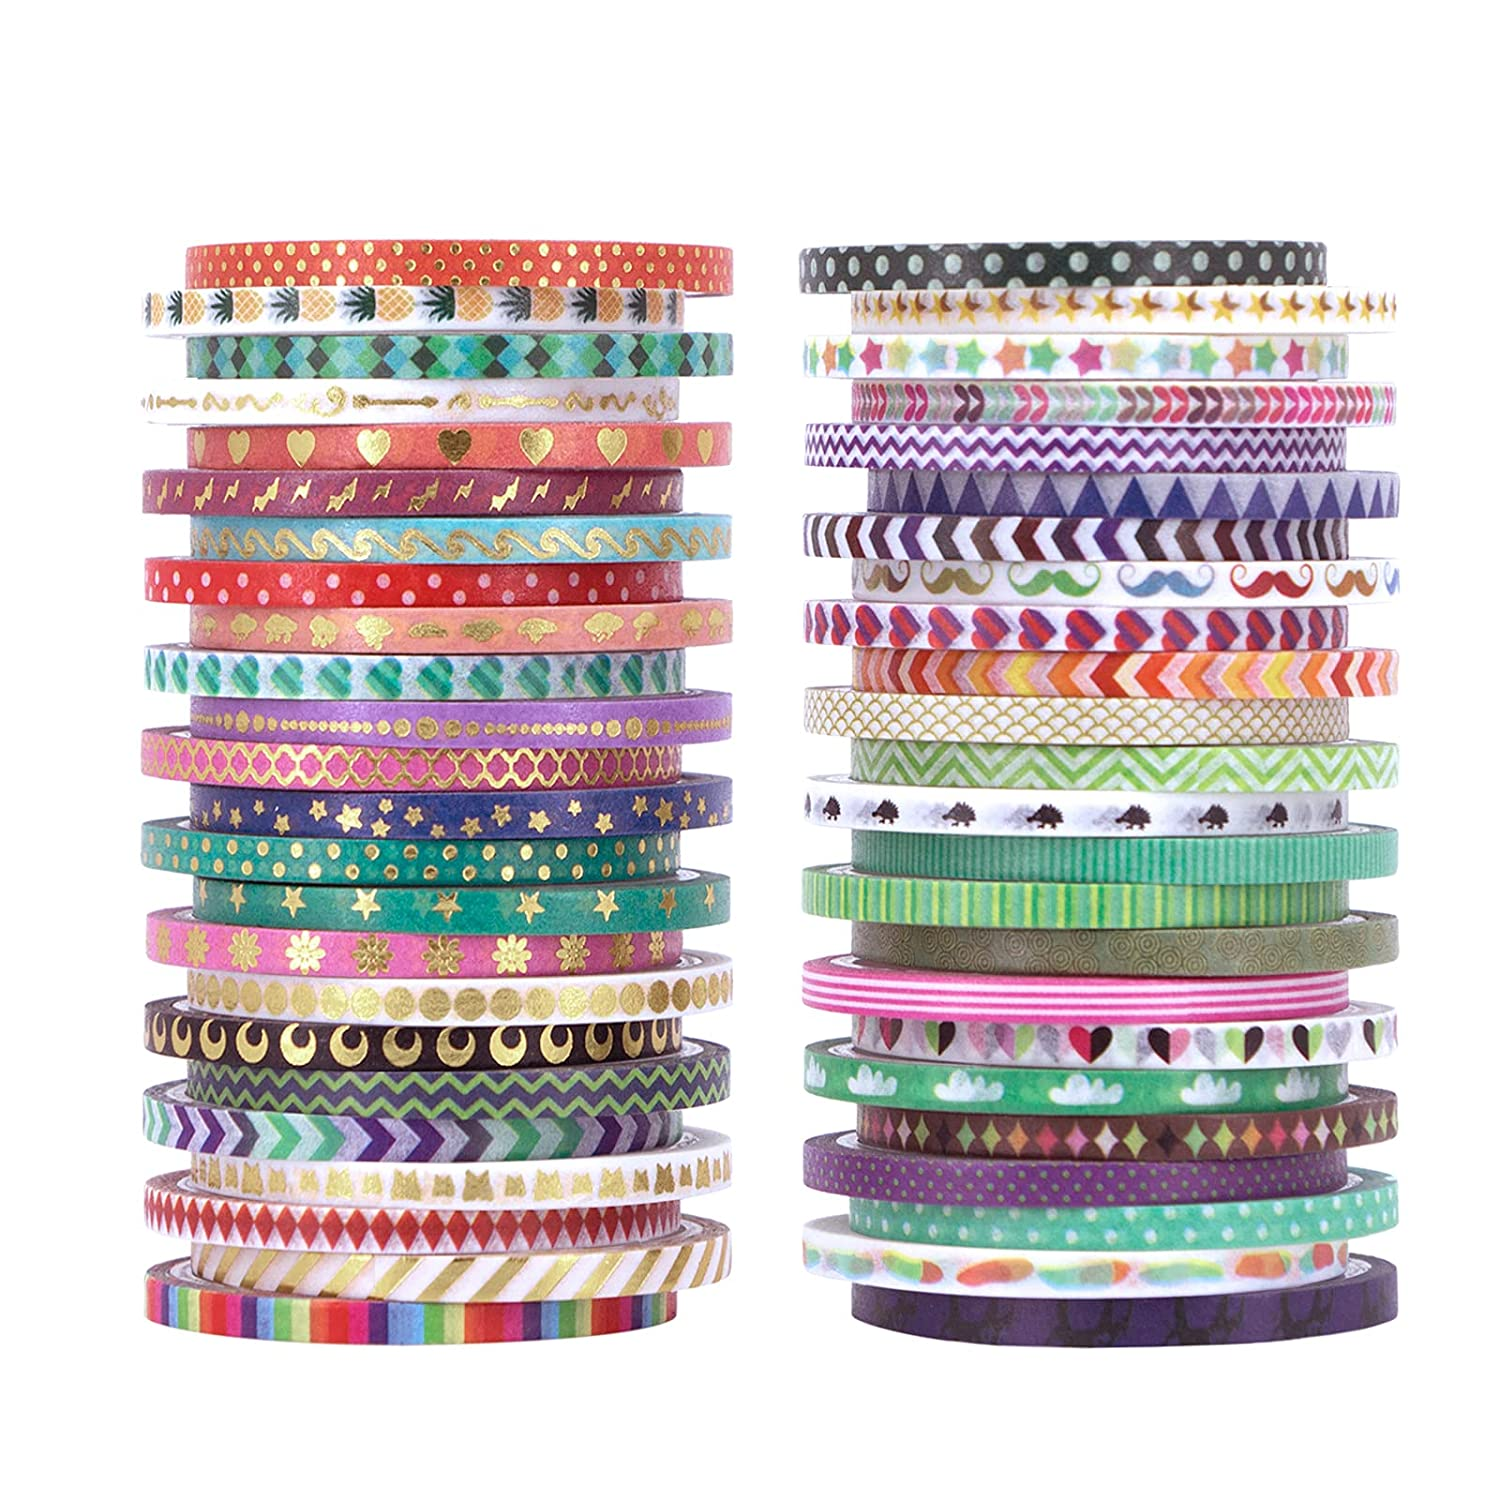 Cute OFFicial 48 Rolls Washi Tape Fort Worth Mall Set W Decorative Masking Gold Foil Thin